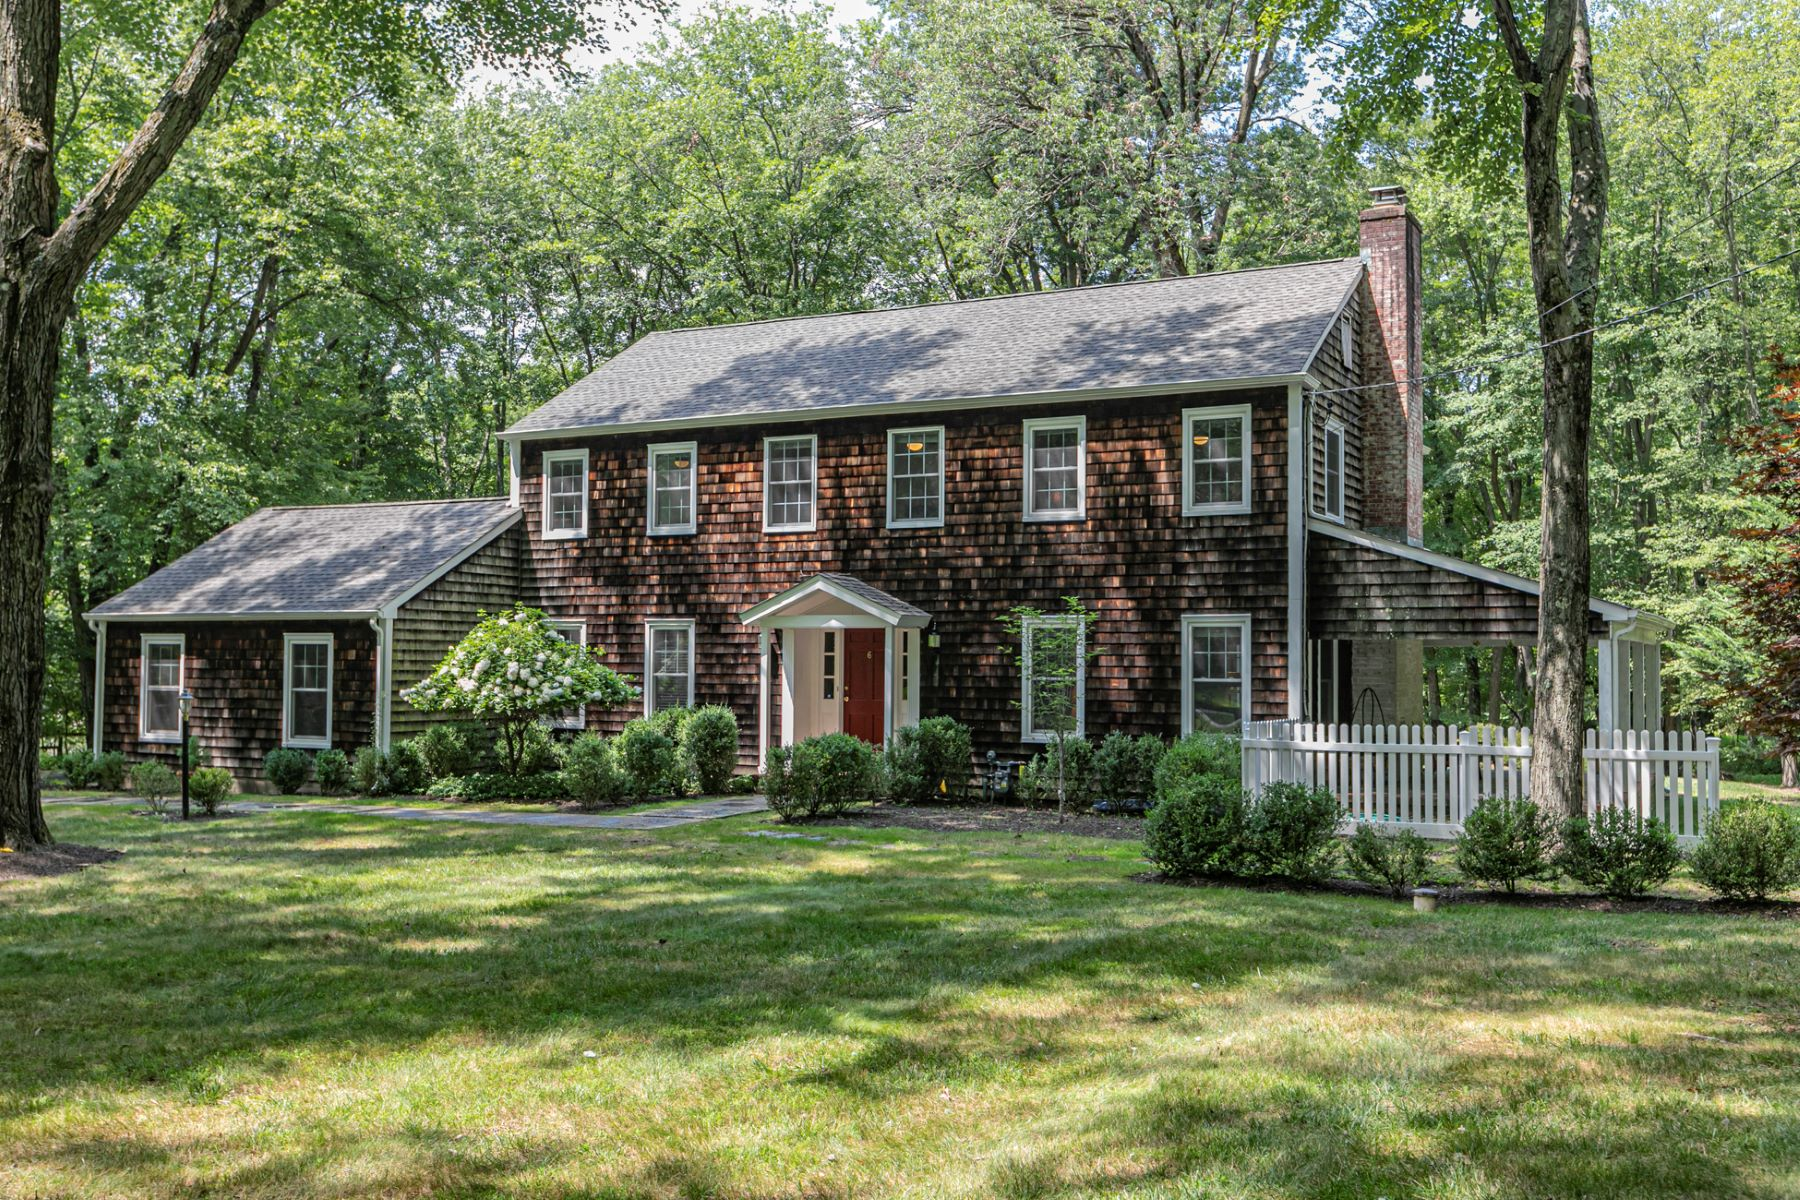 Single Family Homes for Sale at Move-In Ready, Completely Updated In Old Elm Ridge Park 6 Cedar Brook Terrace, Princeton, New Jersey 08540 United States